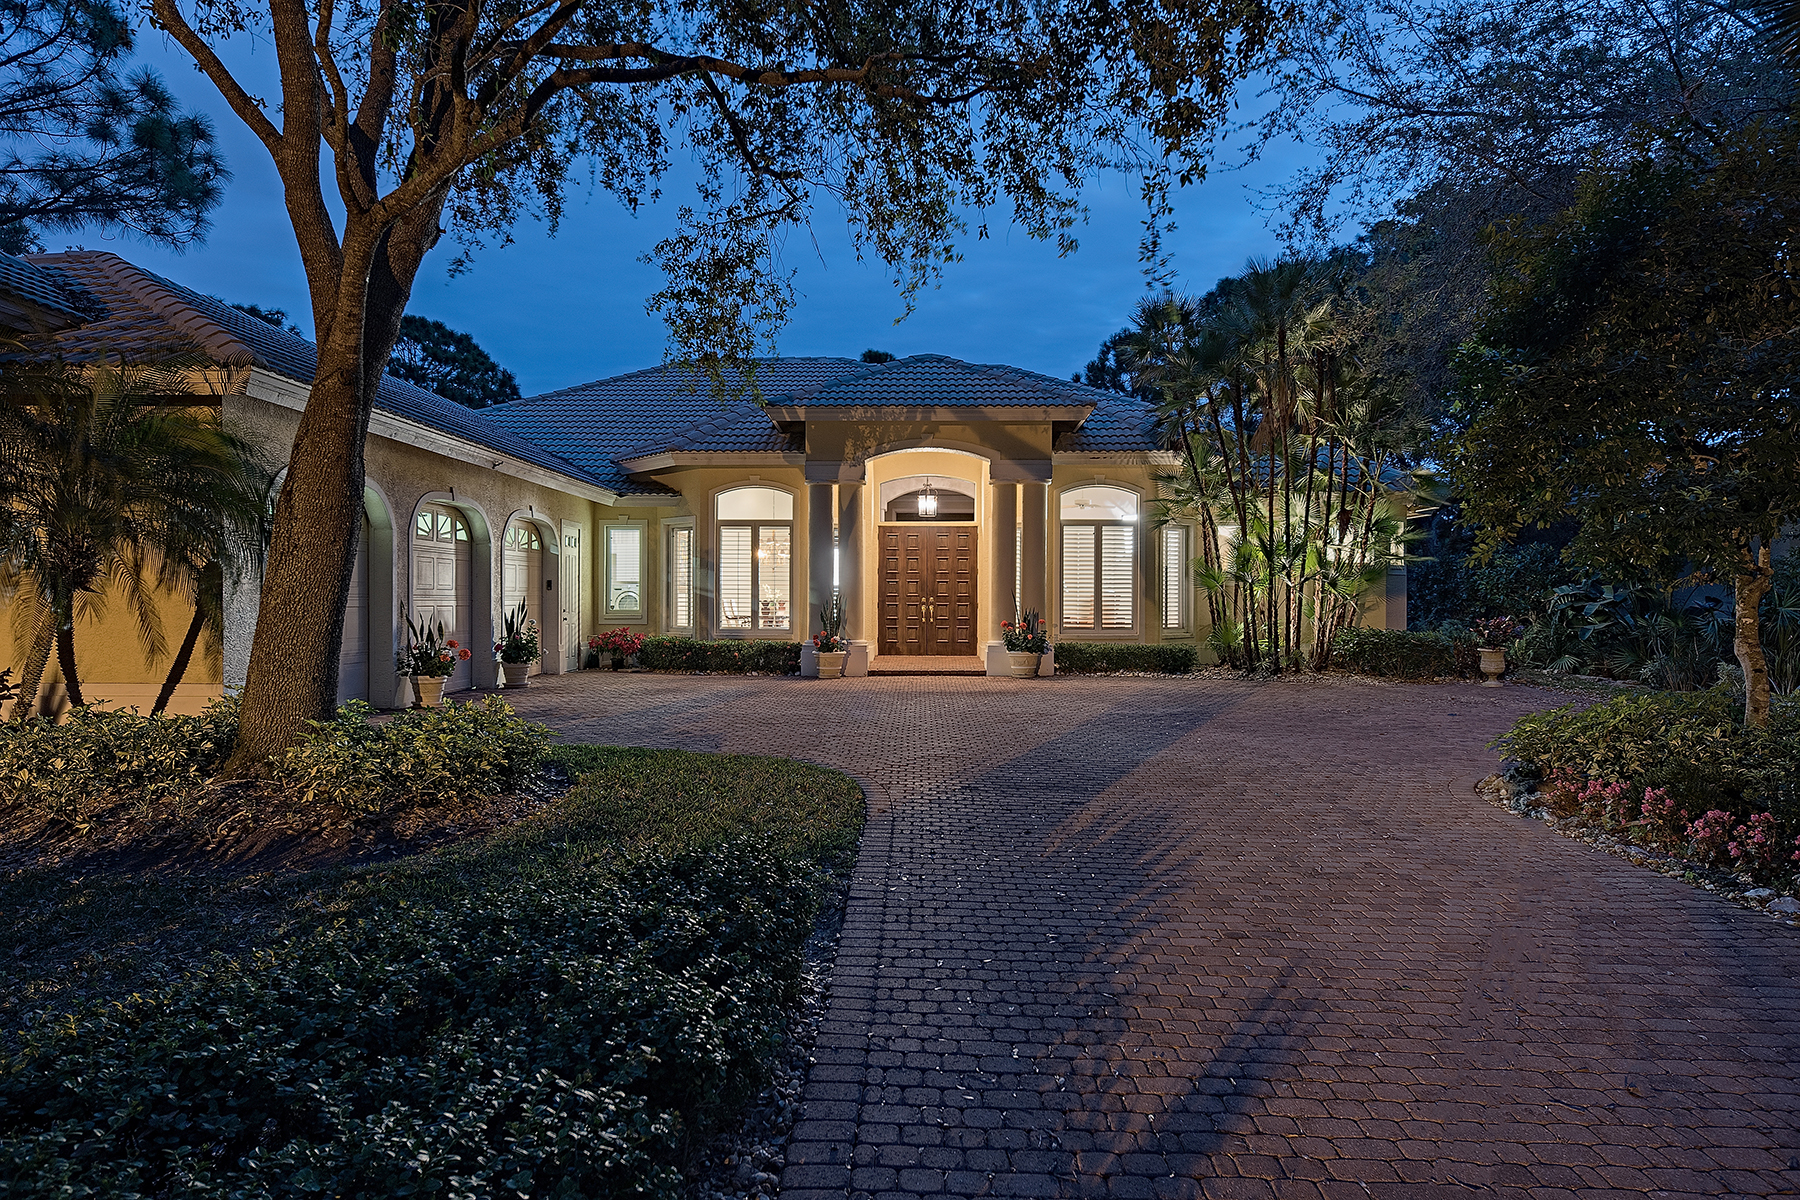 Single Family Home for Sale at Naples 850 Barcarmil Way, Naples, Florida 34110 United States